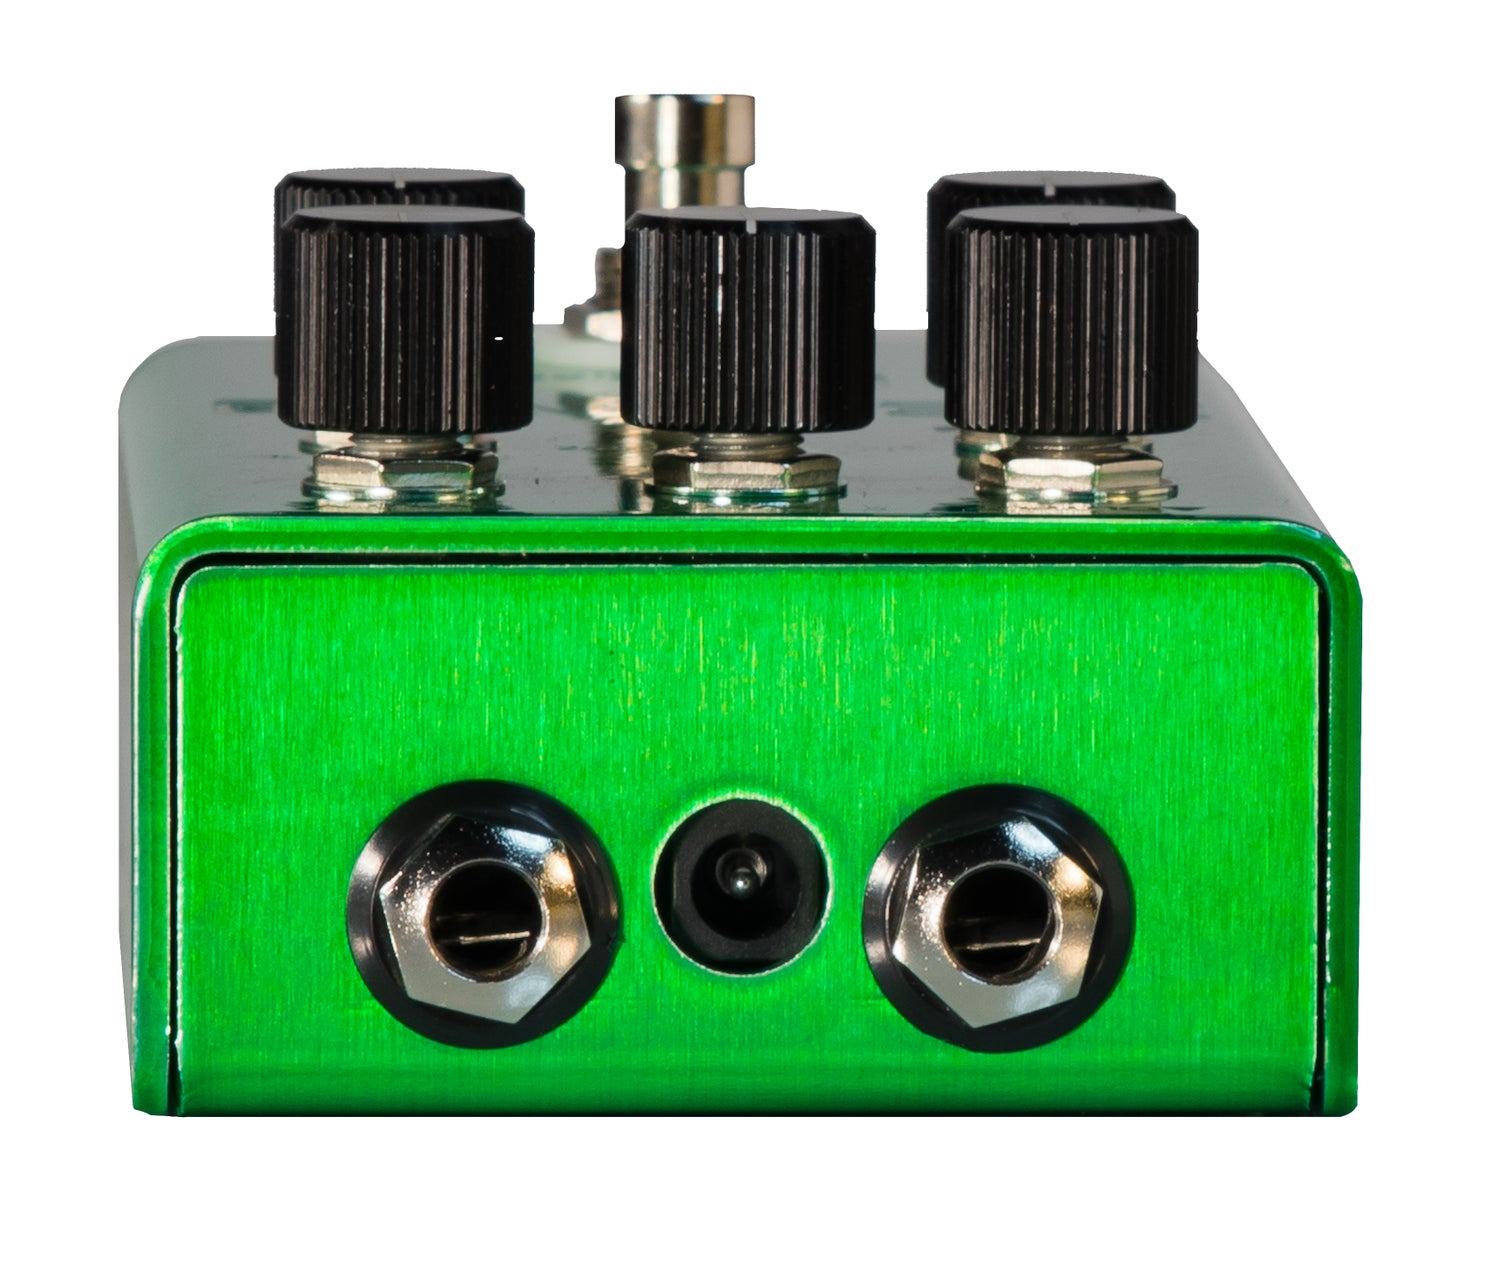 Image of G2 Pedal